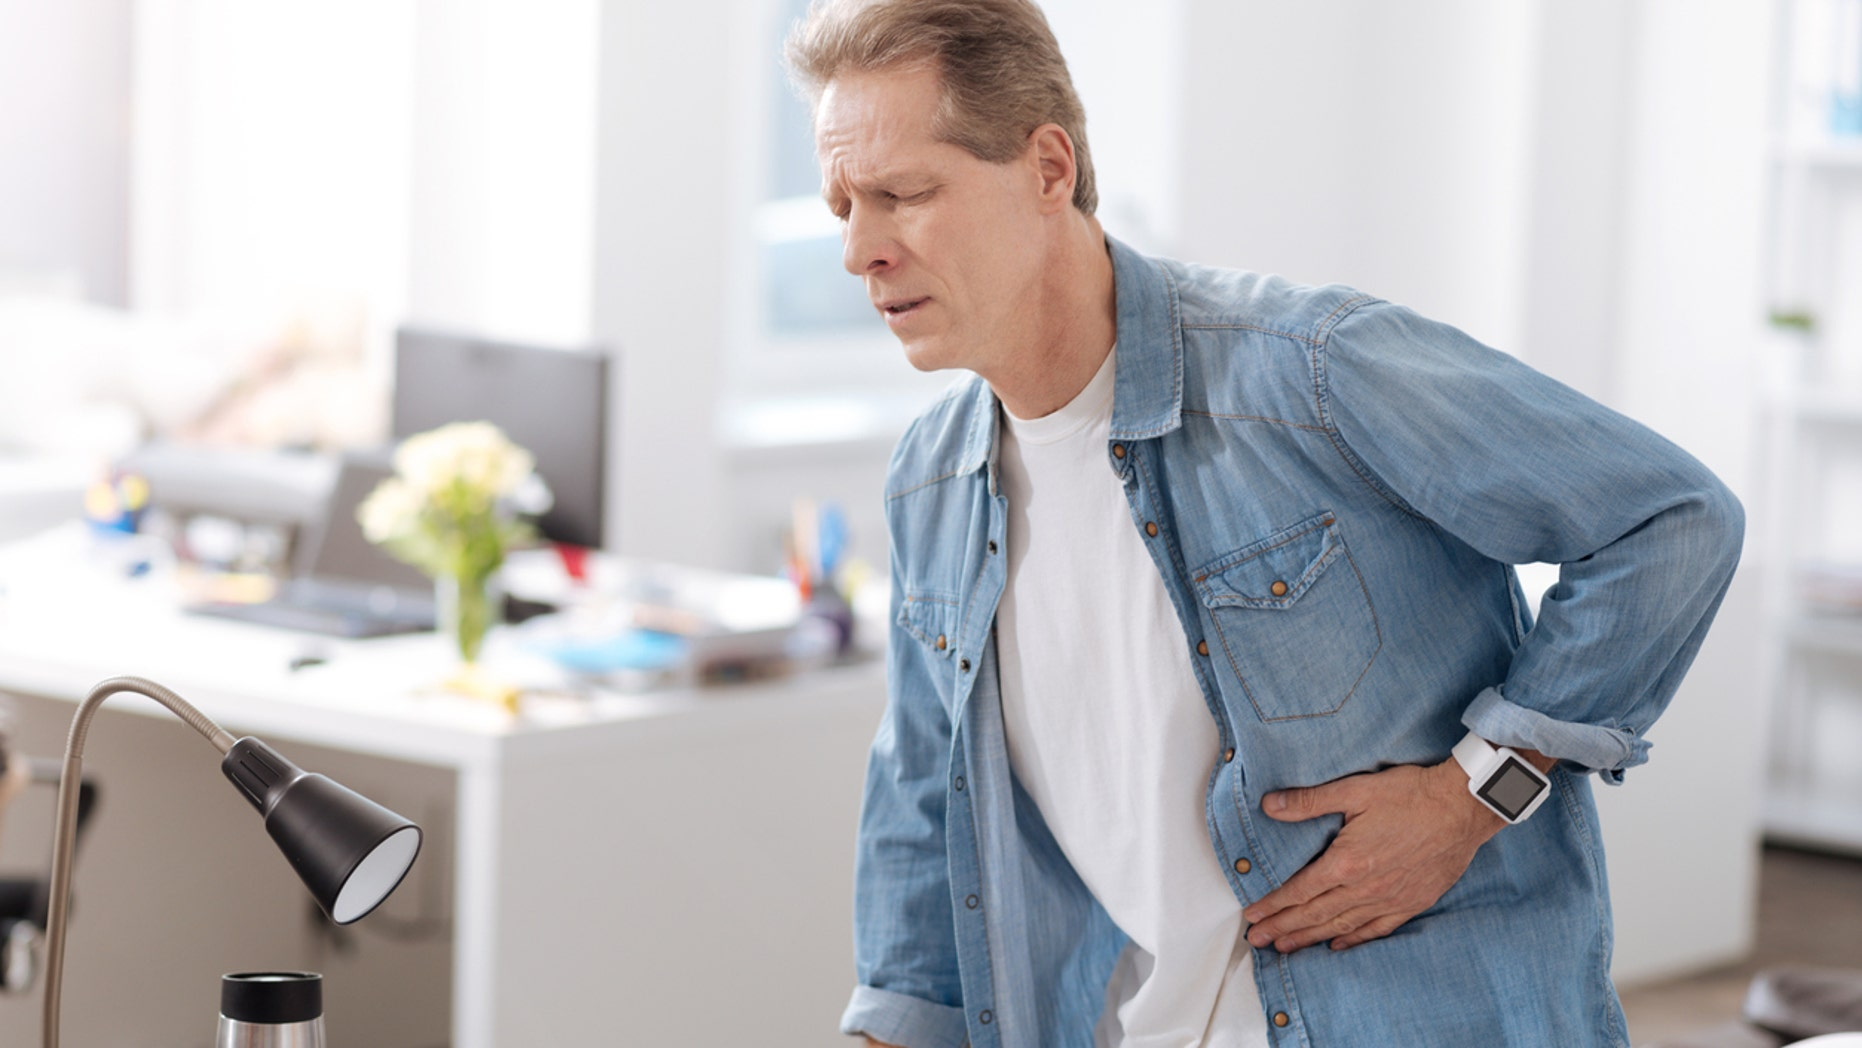 About 5 percent of the population eventually ends up with appendicitis.